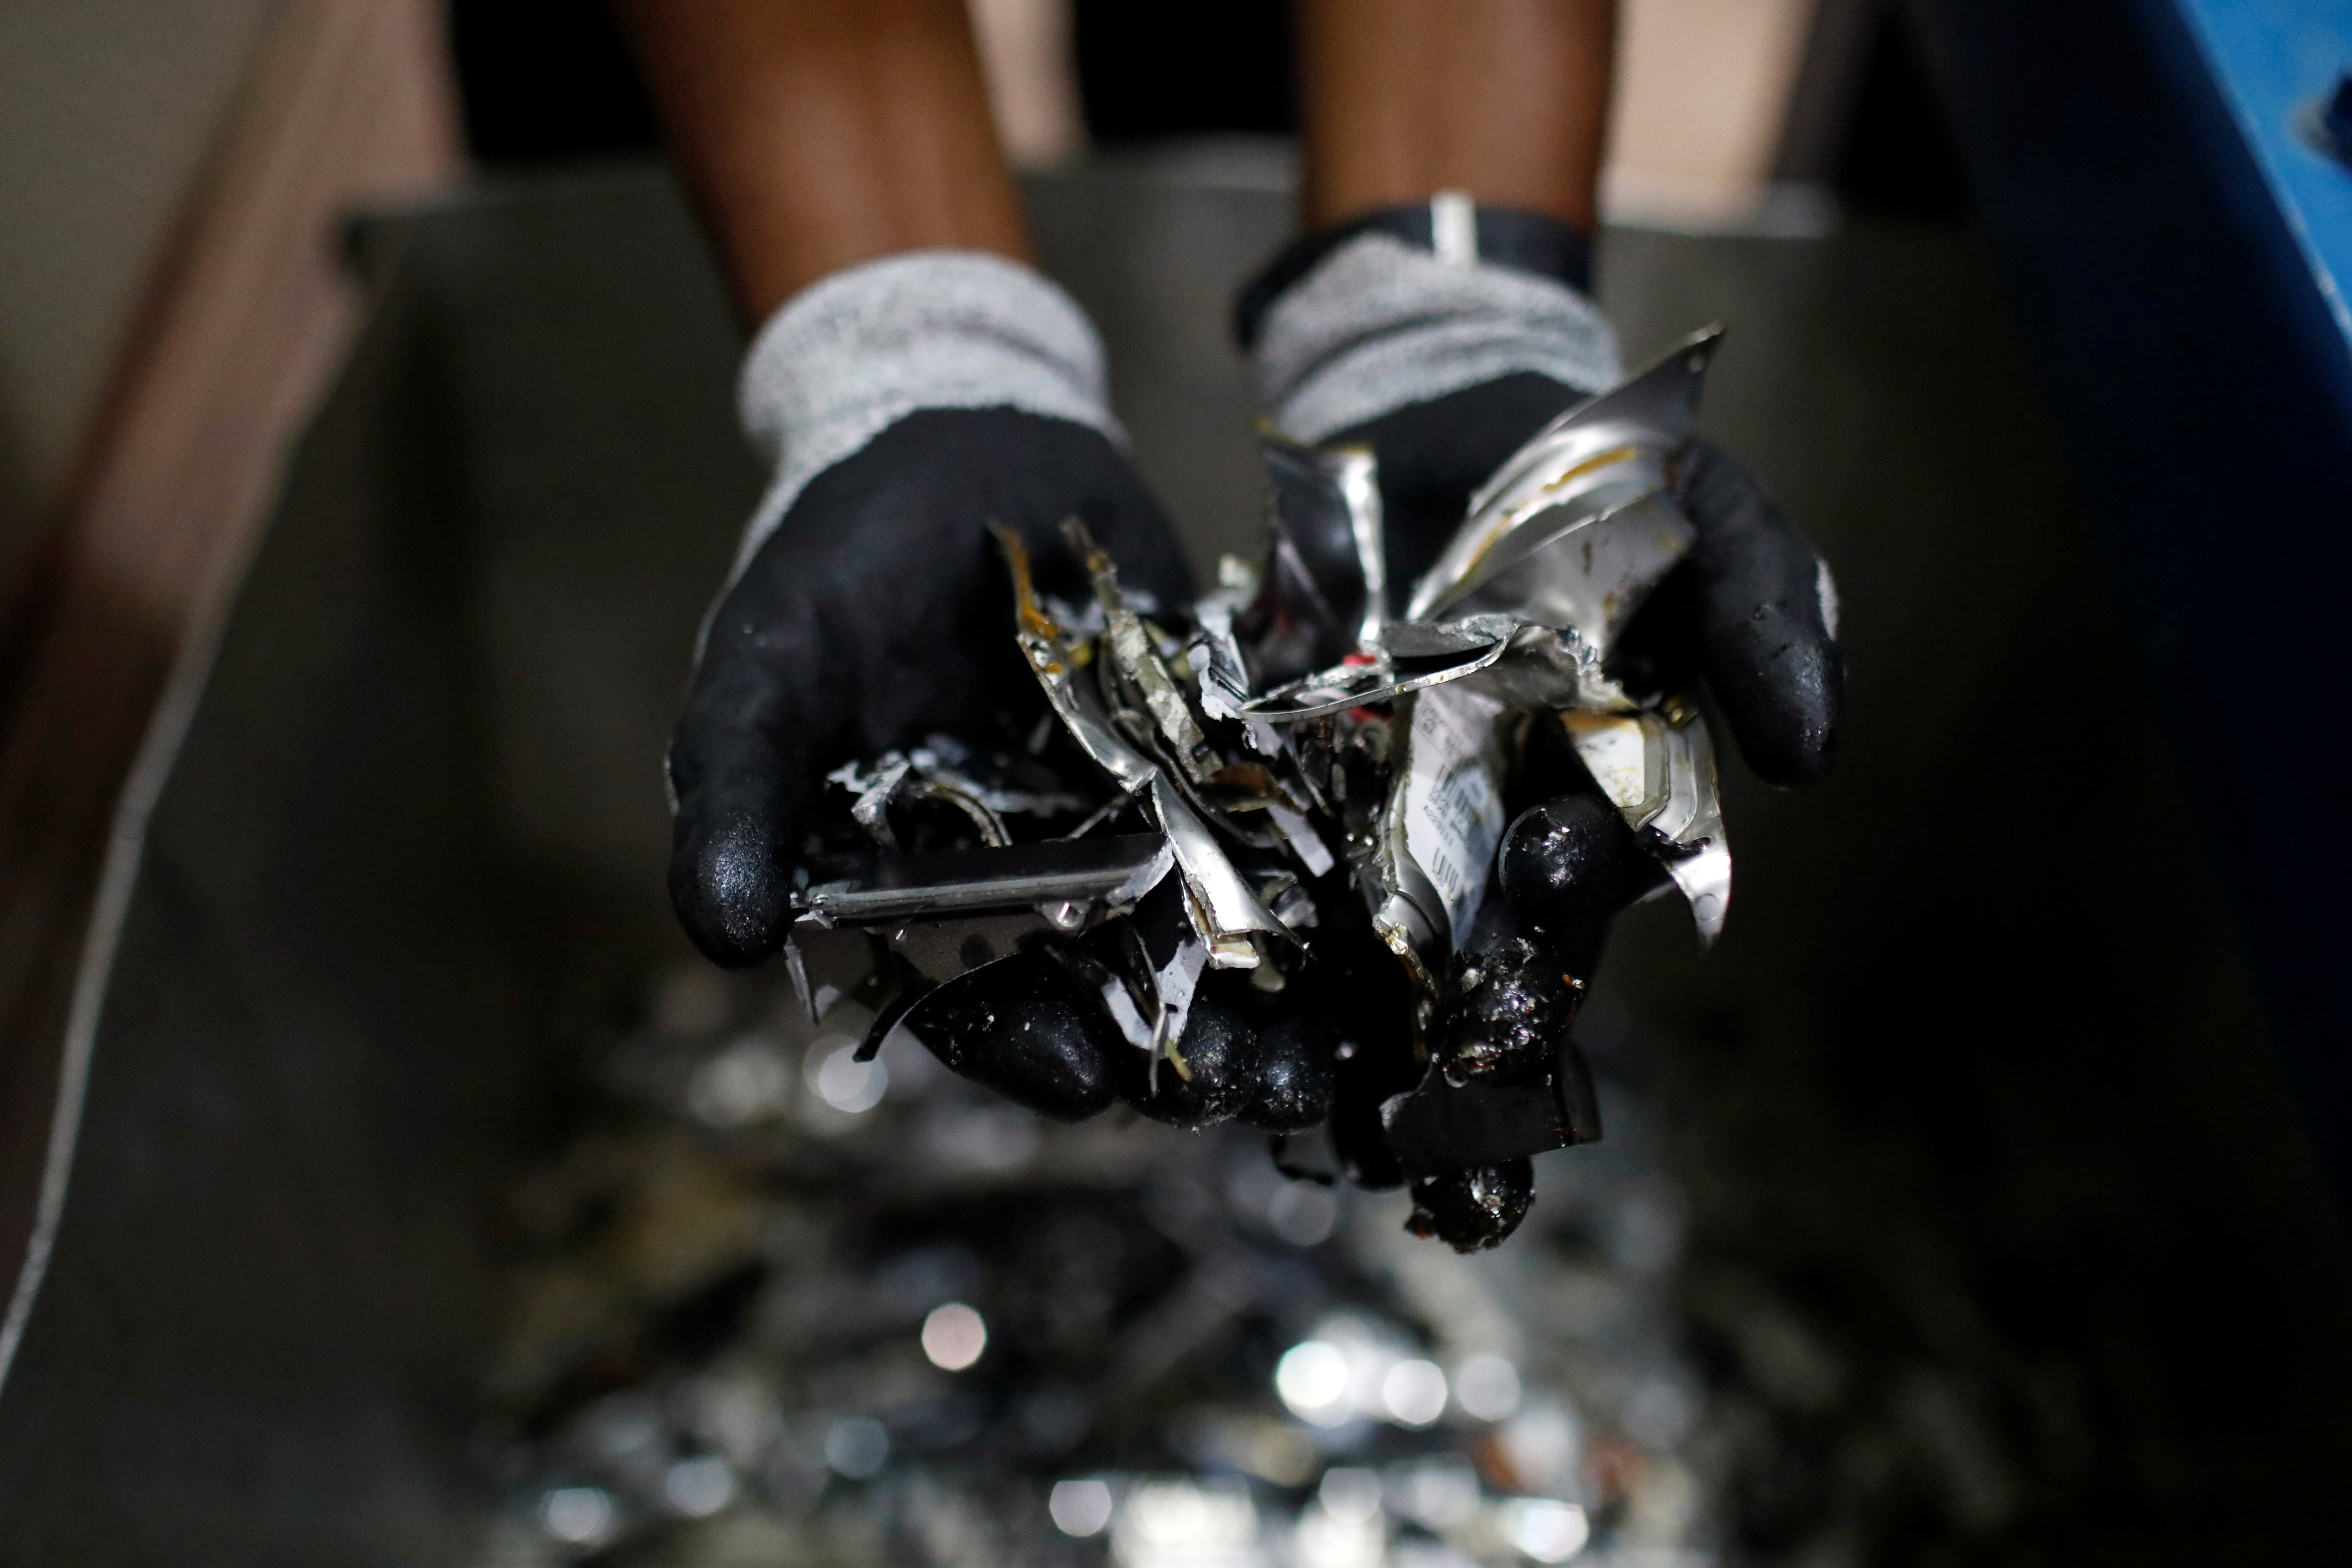 An employee displays a handful of shredded hard drive pieces, for e-waste processing, at E-Terra Matter Recovery and Recycling Facility in Festac, Lagos, Nigeria June 19, 2020. Picture taken June 19, 2020. REUTERS/Temilade Adelaja - RC2CYH9YMIGJ